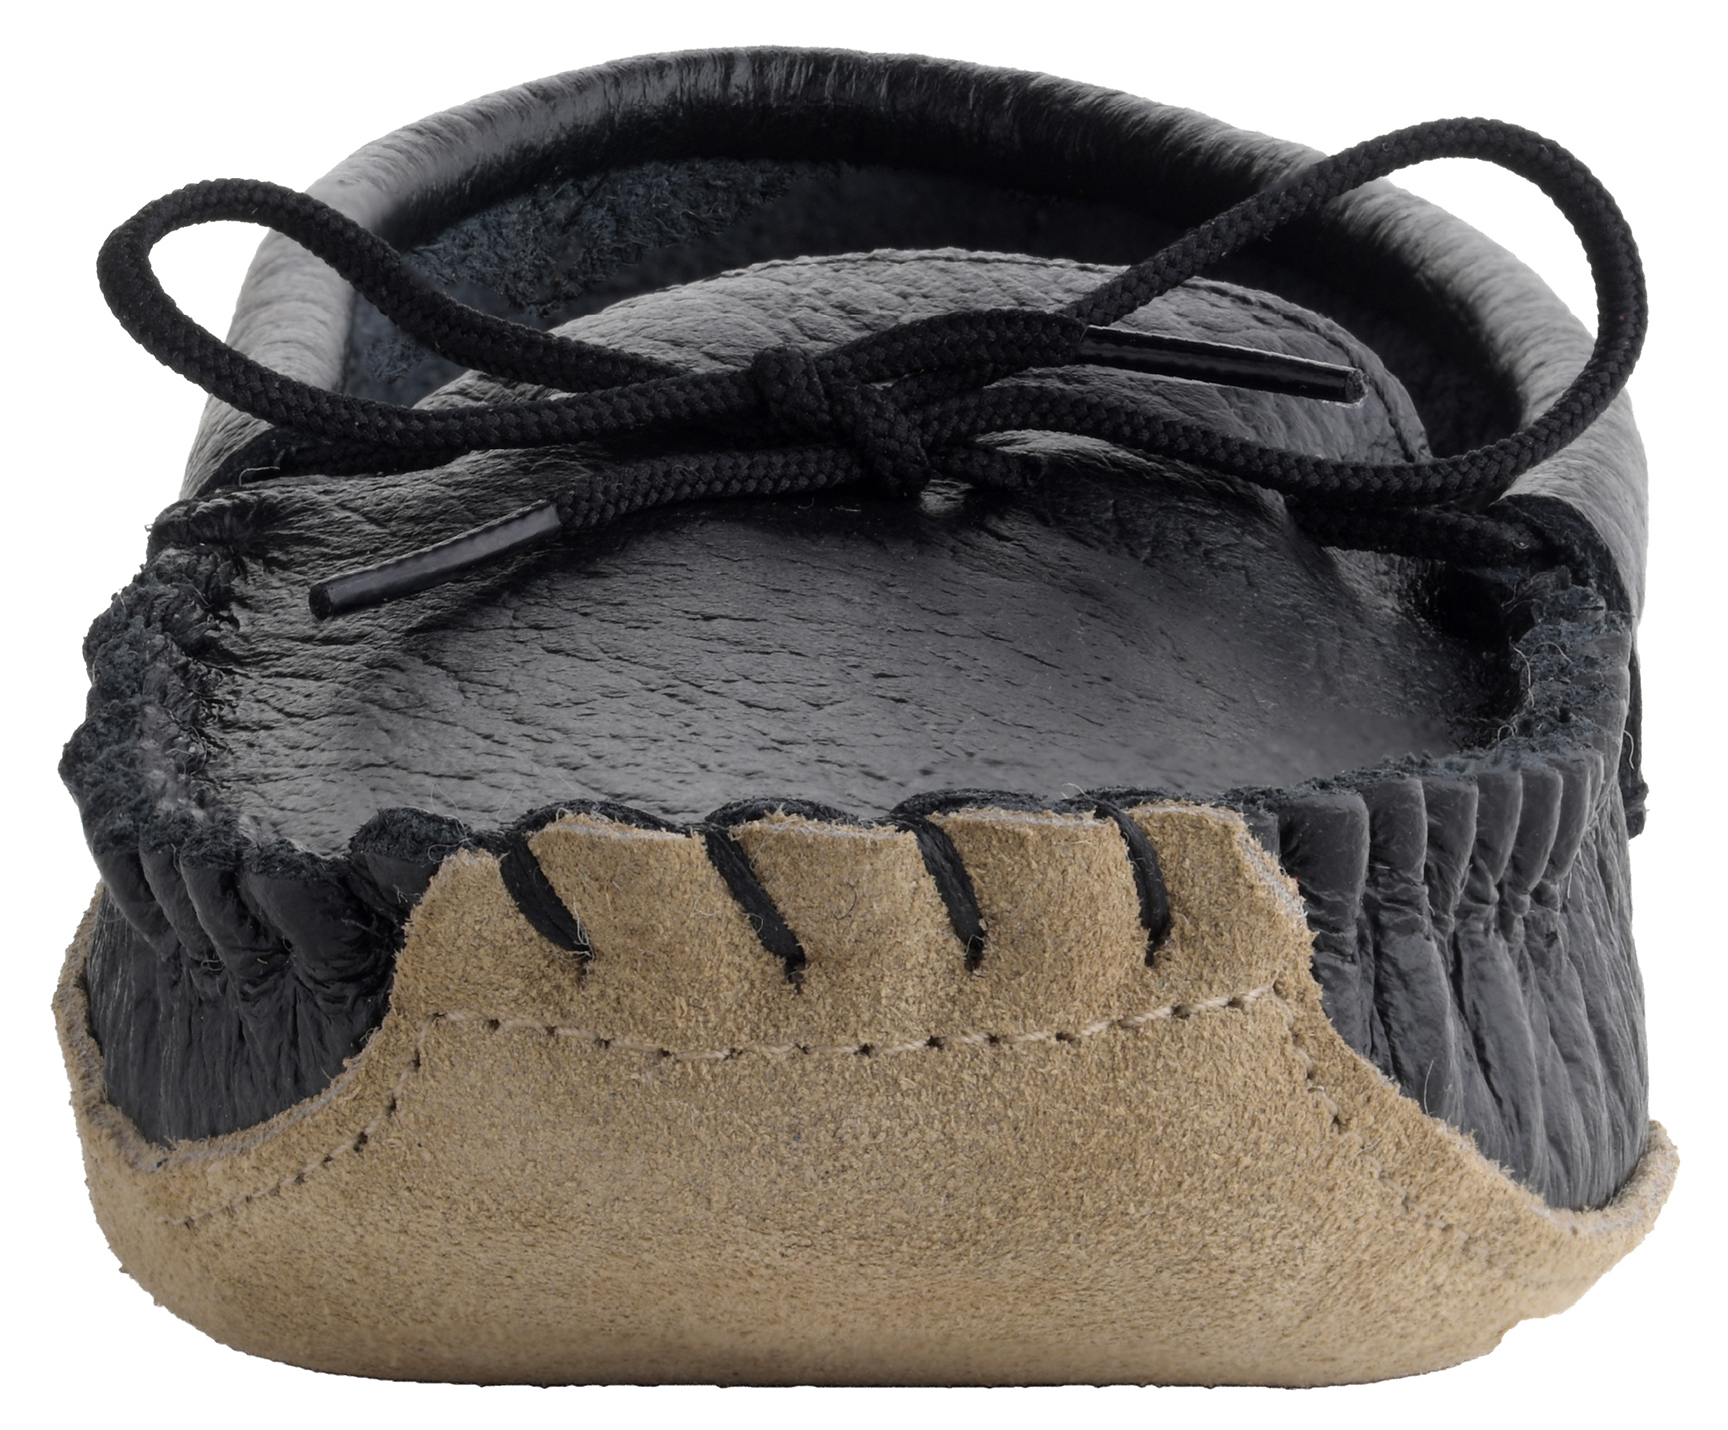 Leather-Earthing-Grounding-Moccasin-Slippers-Made-in-the-UK-Mens-amp-Ladies thumbnail 13